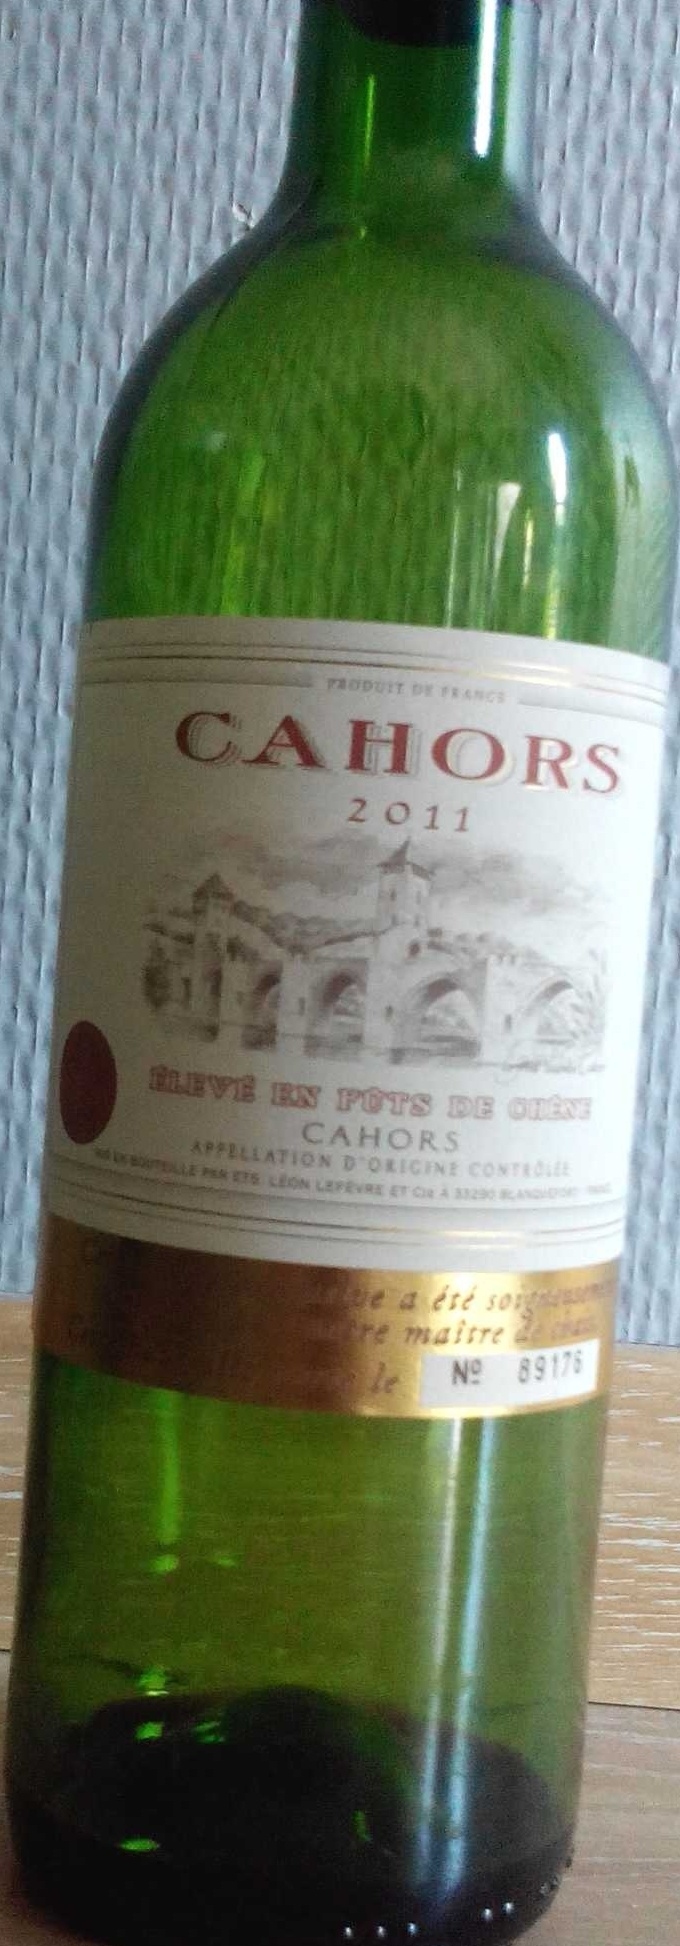 Cahors 2011 - Product